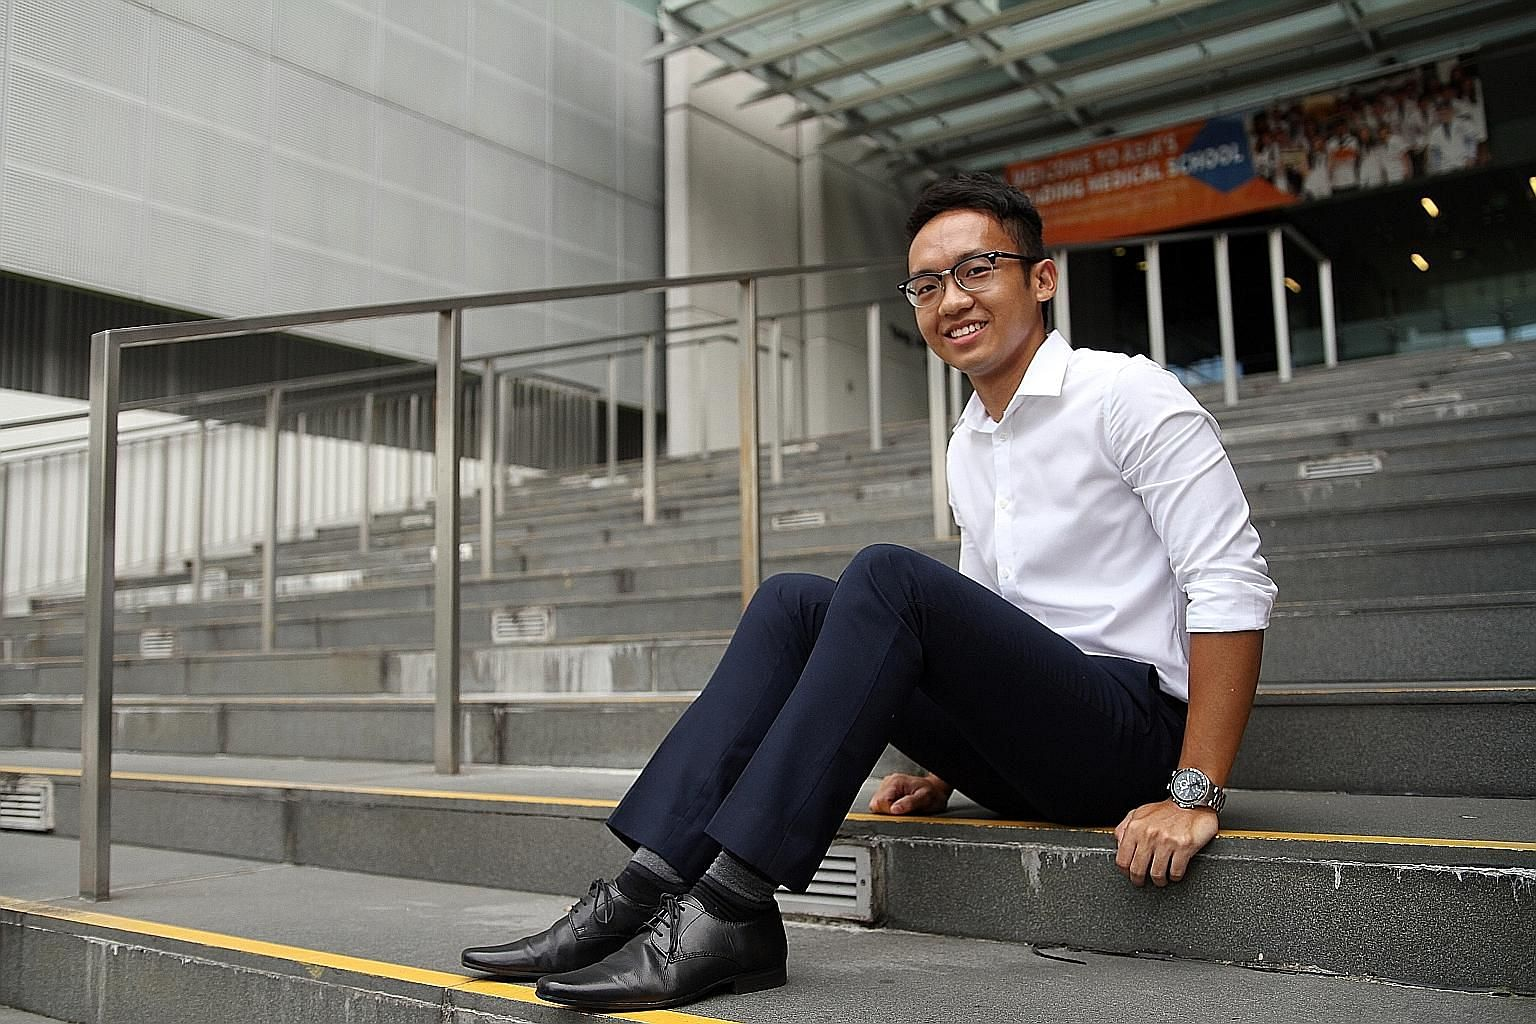 For Mr Tan Jun Xiang, now in his second year at the Yong Loo Lin School of Medicine at NUS, being accepted into his secondary school of choice after his parents appealed marked the start of his path to academic success.